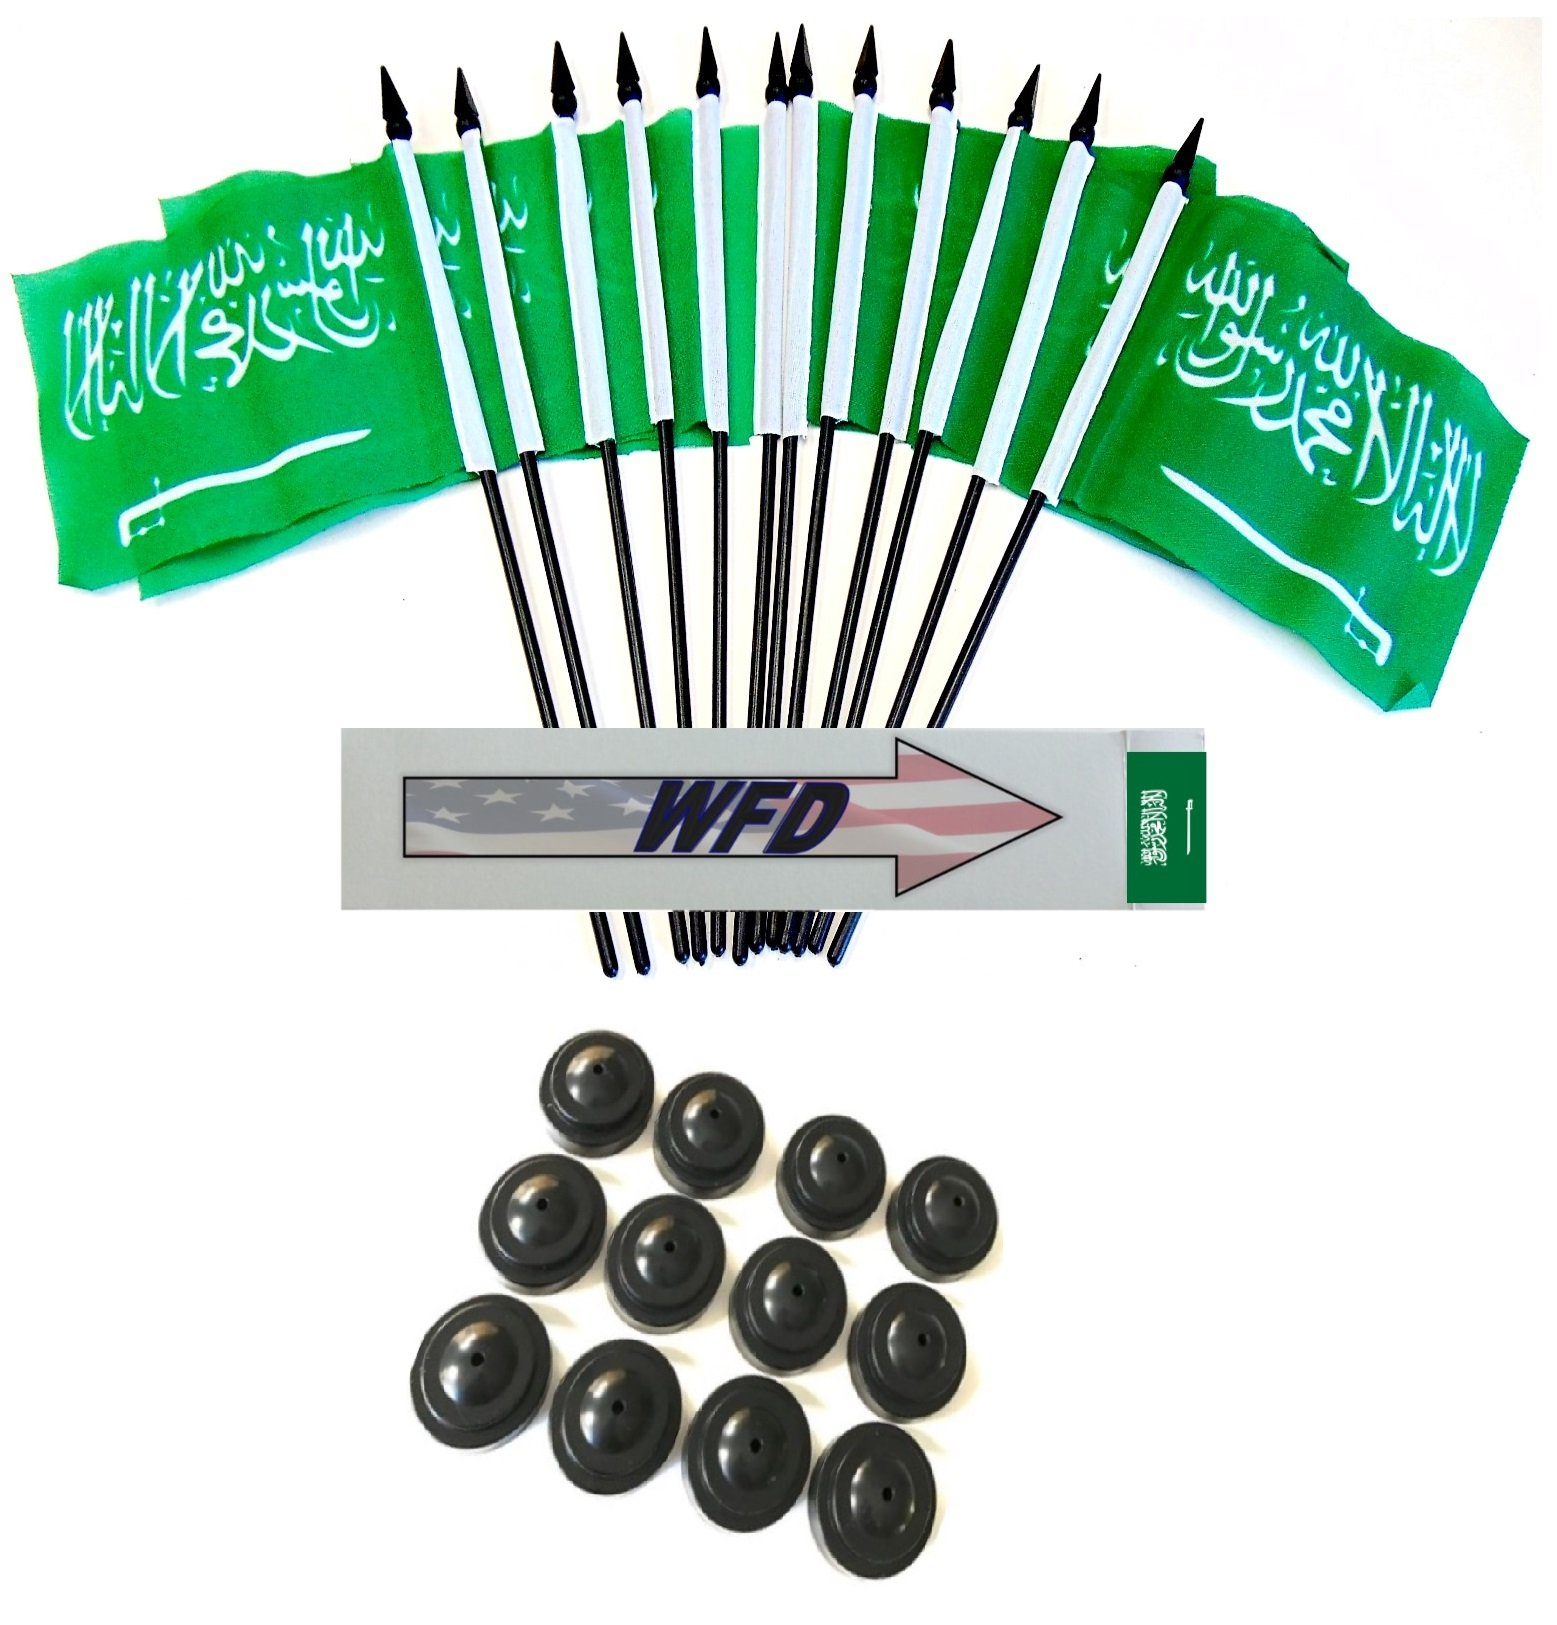 Pack of 12 4''x6'' Saudi Arabia Polyester Miniature Office Desk & Little Table Flags, 1 Dozen 4''x 6'' Saudi Arabian Small Mini Handheld Waving Stick Flags with 12 Flag Bases (Flags with Stands)